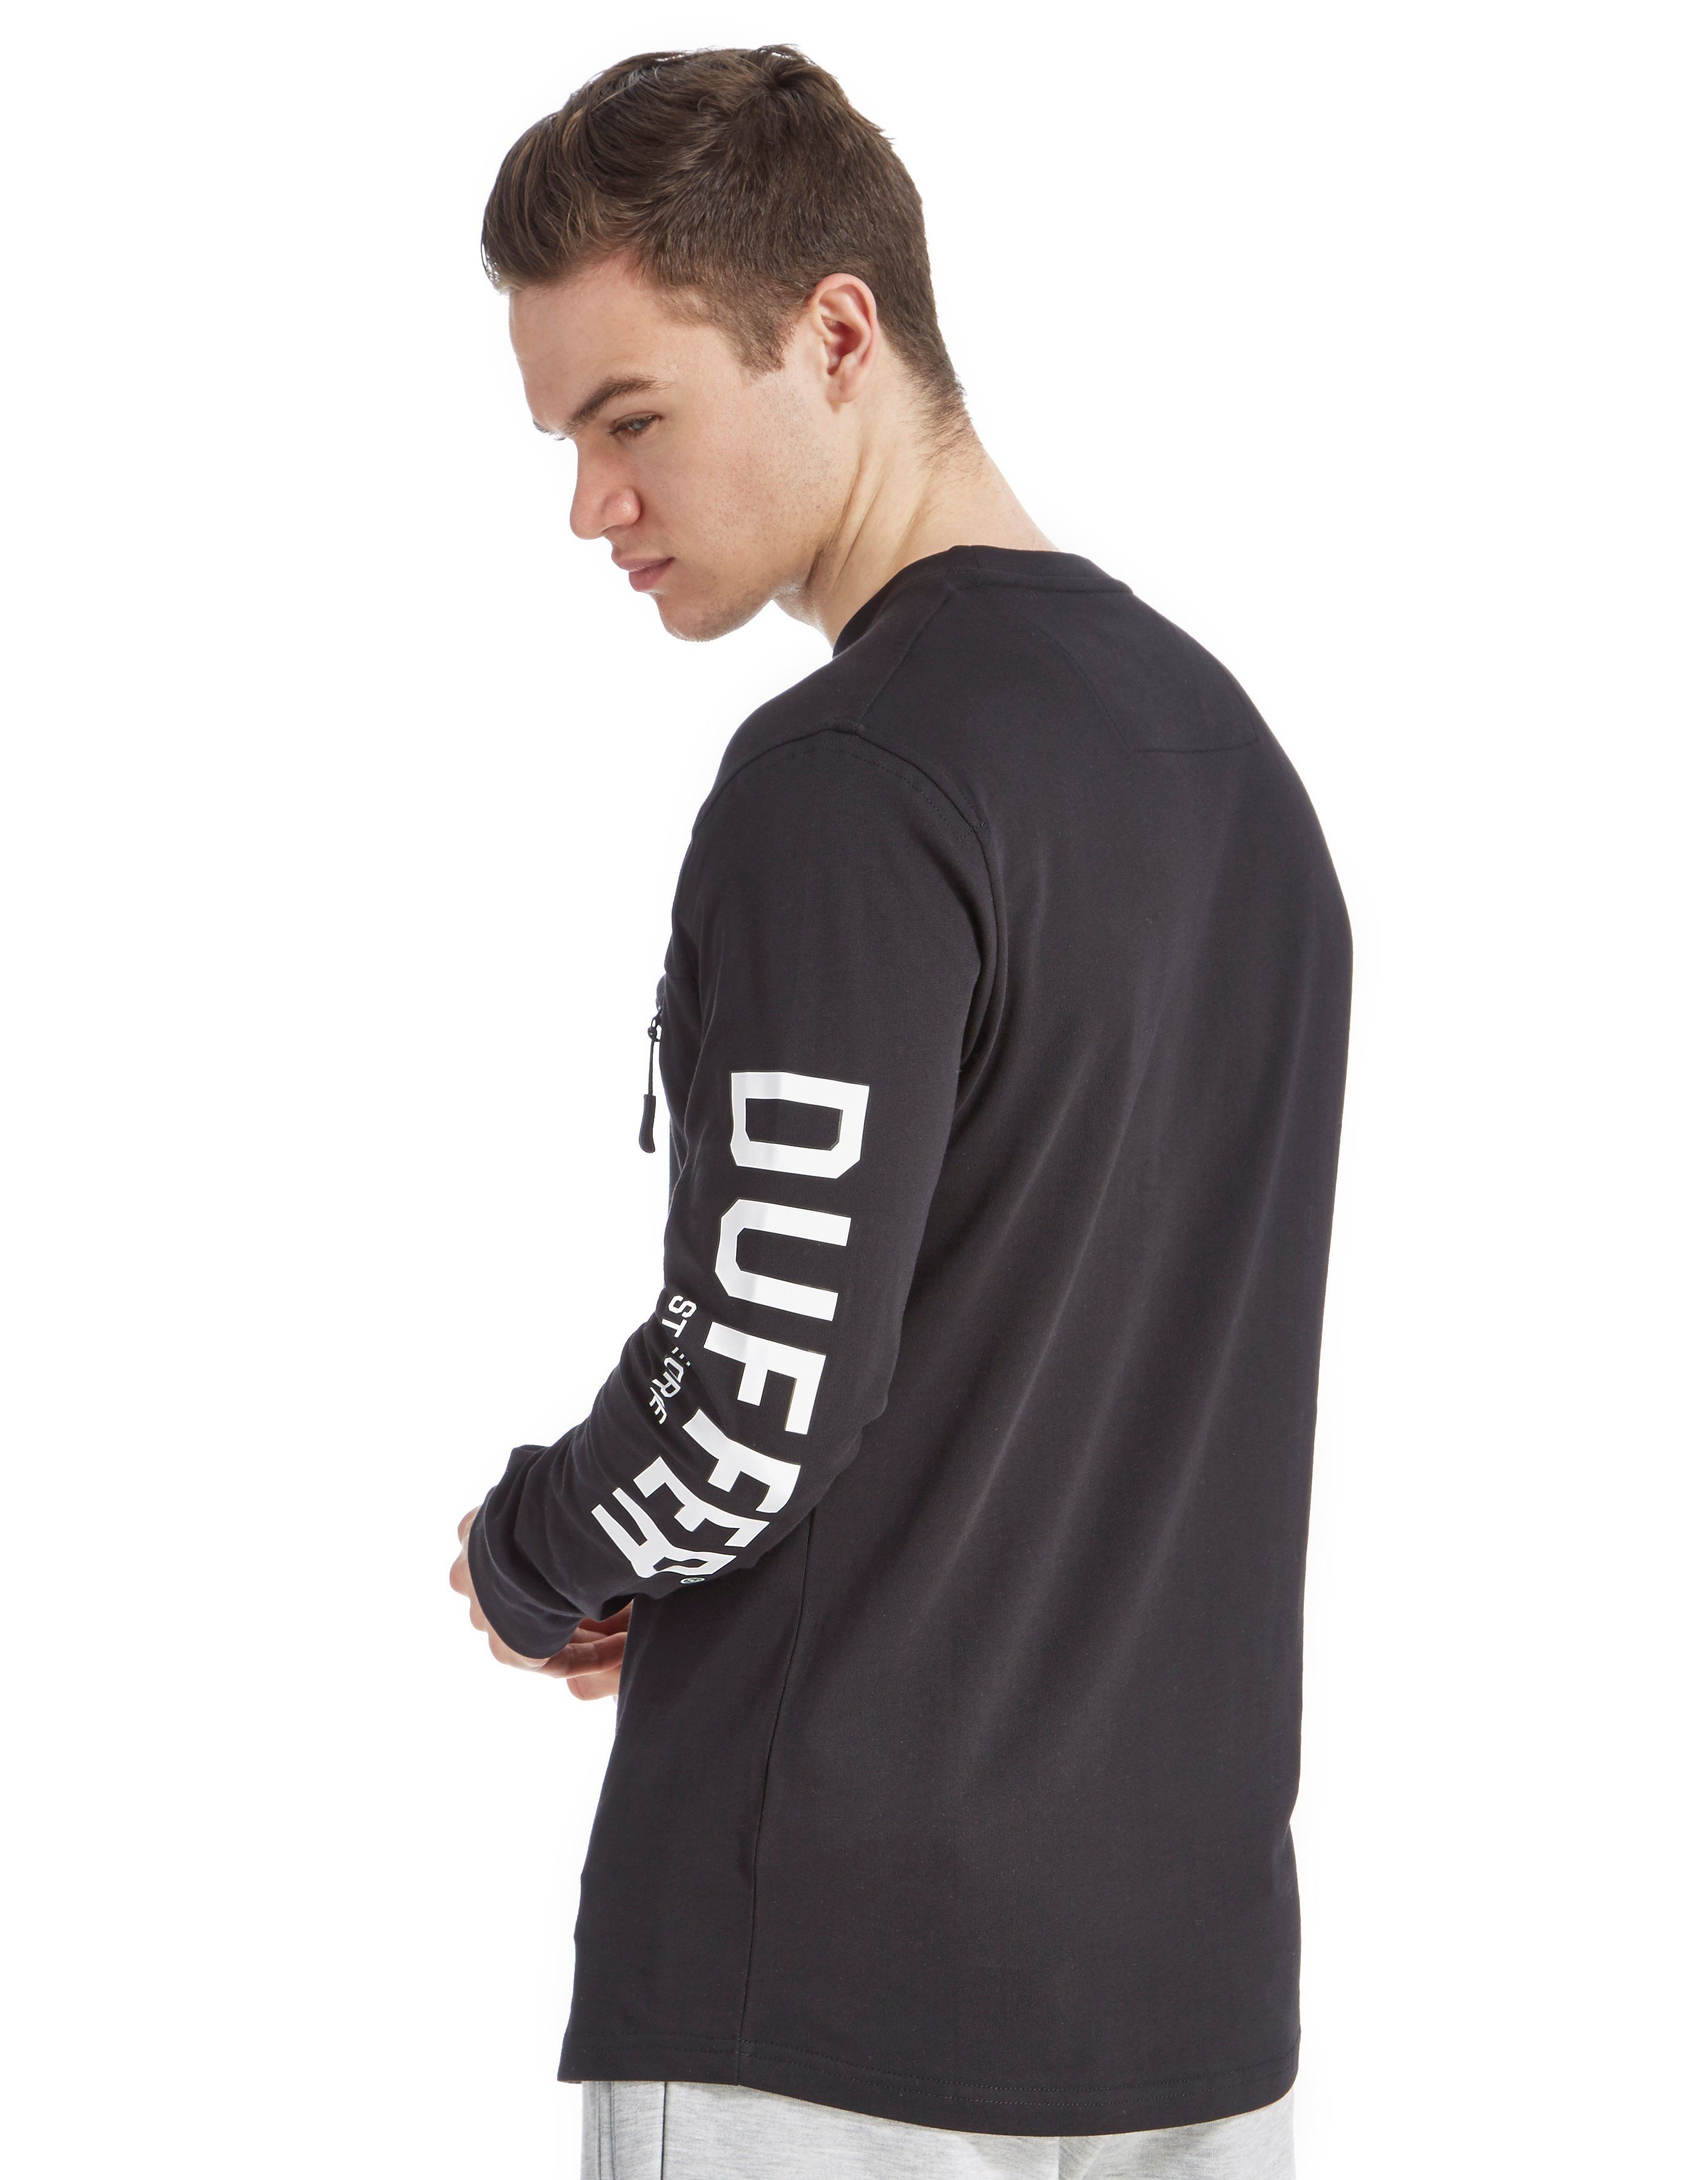 Duffer of St George Black Label Sigma Long Sleeve T-Shirt